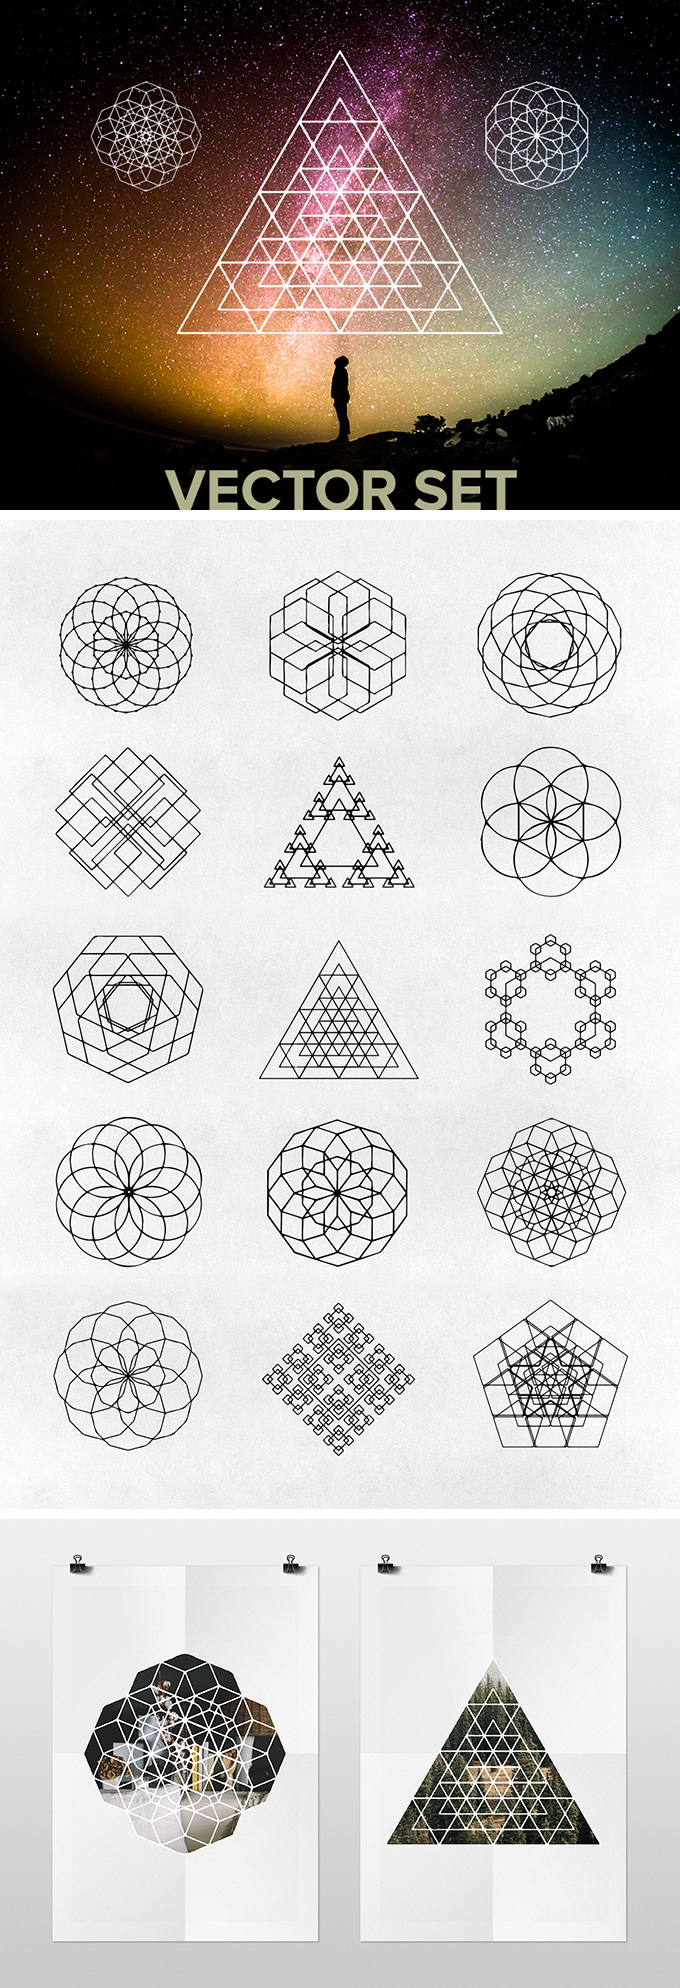 680x1988 Free Sacred Geometry Shapes Download Psd, Ai, Eps, Png